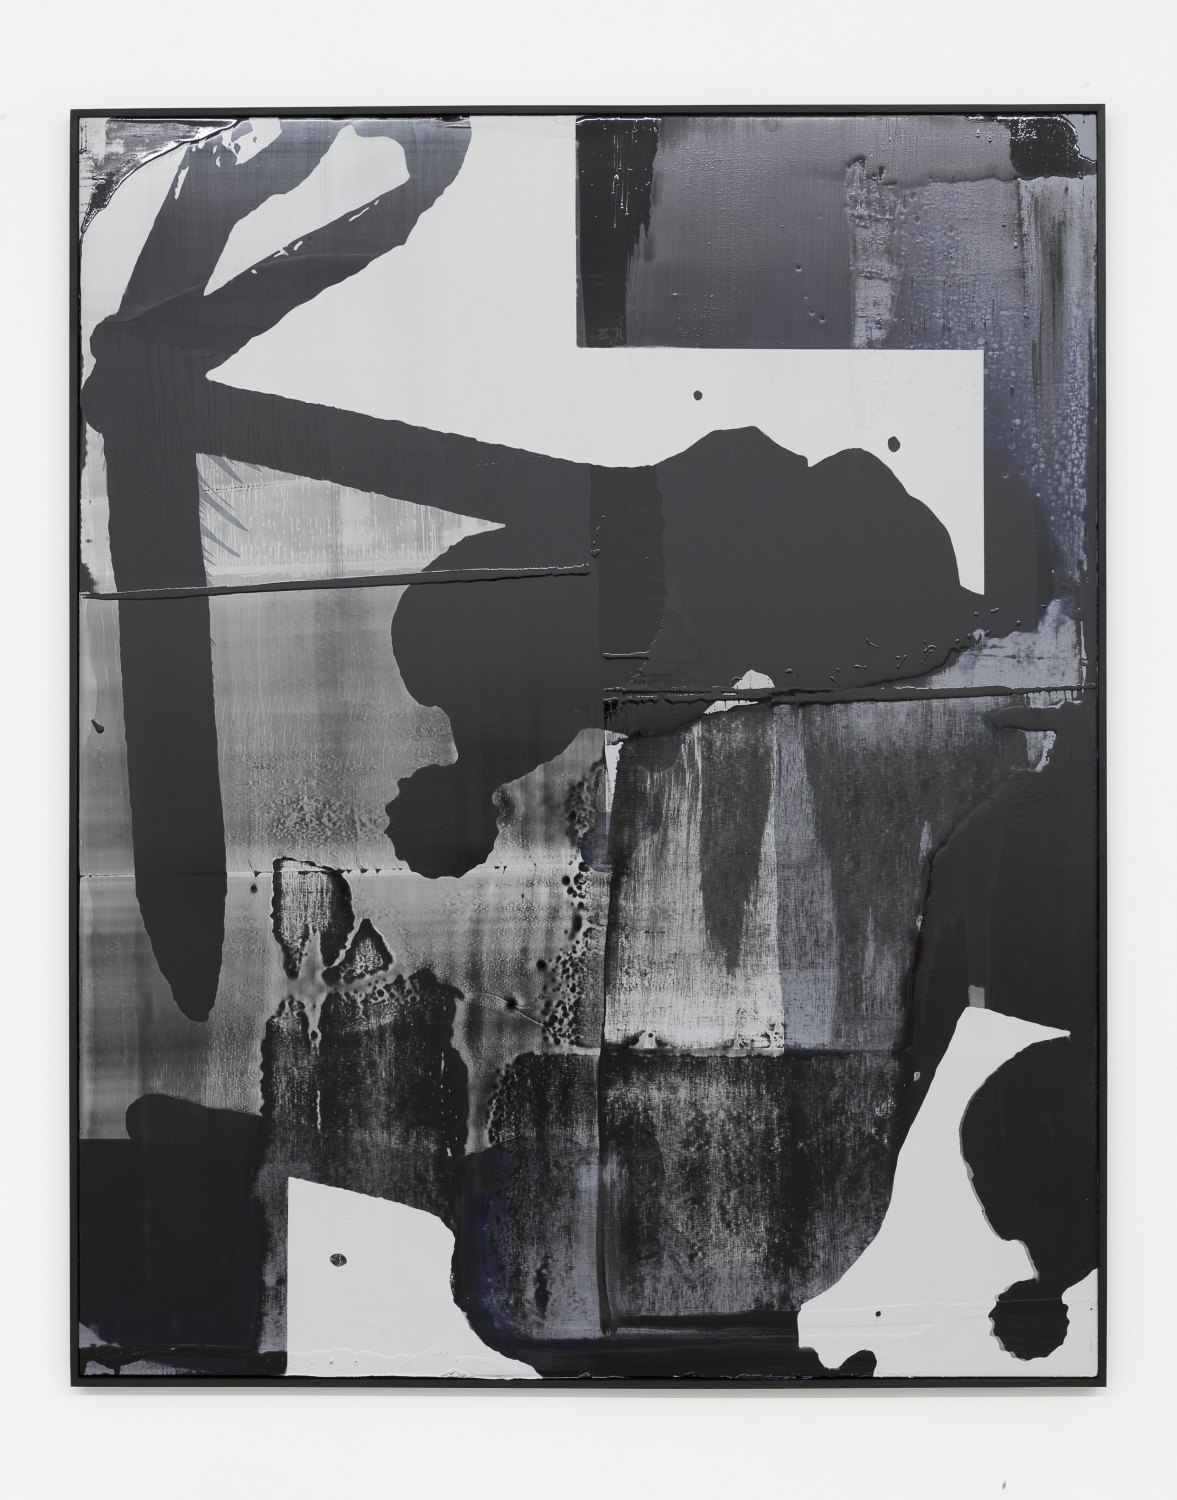 Alex Hubbard Untitled Charcoal Painting (Geburtskanal), 2018 Aluminium panel, acrylic, pigmented urethane, charcoal, resin on linen 216,5 x 175,5 x 4 cm